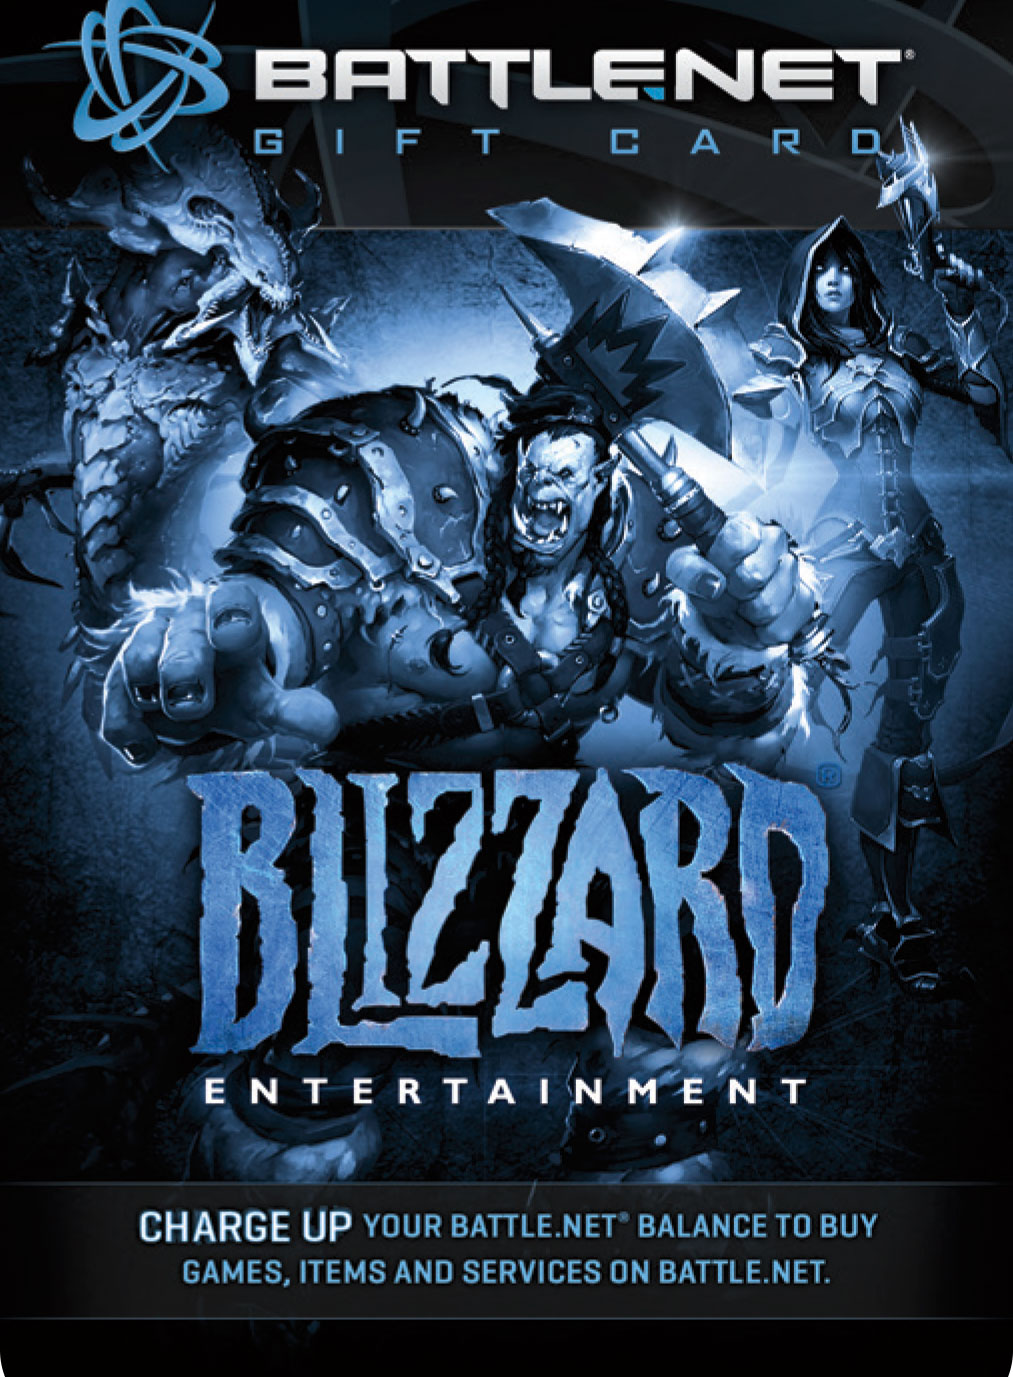 $20 Battle.net Store Gift Card Balance - Blizzard Entertainment [Digital Code] [Online Game Code] (Code Item)